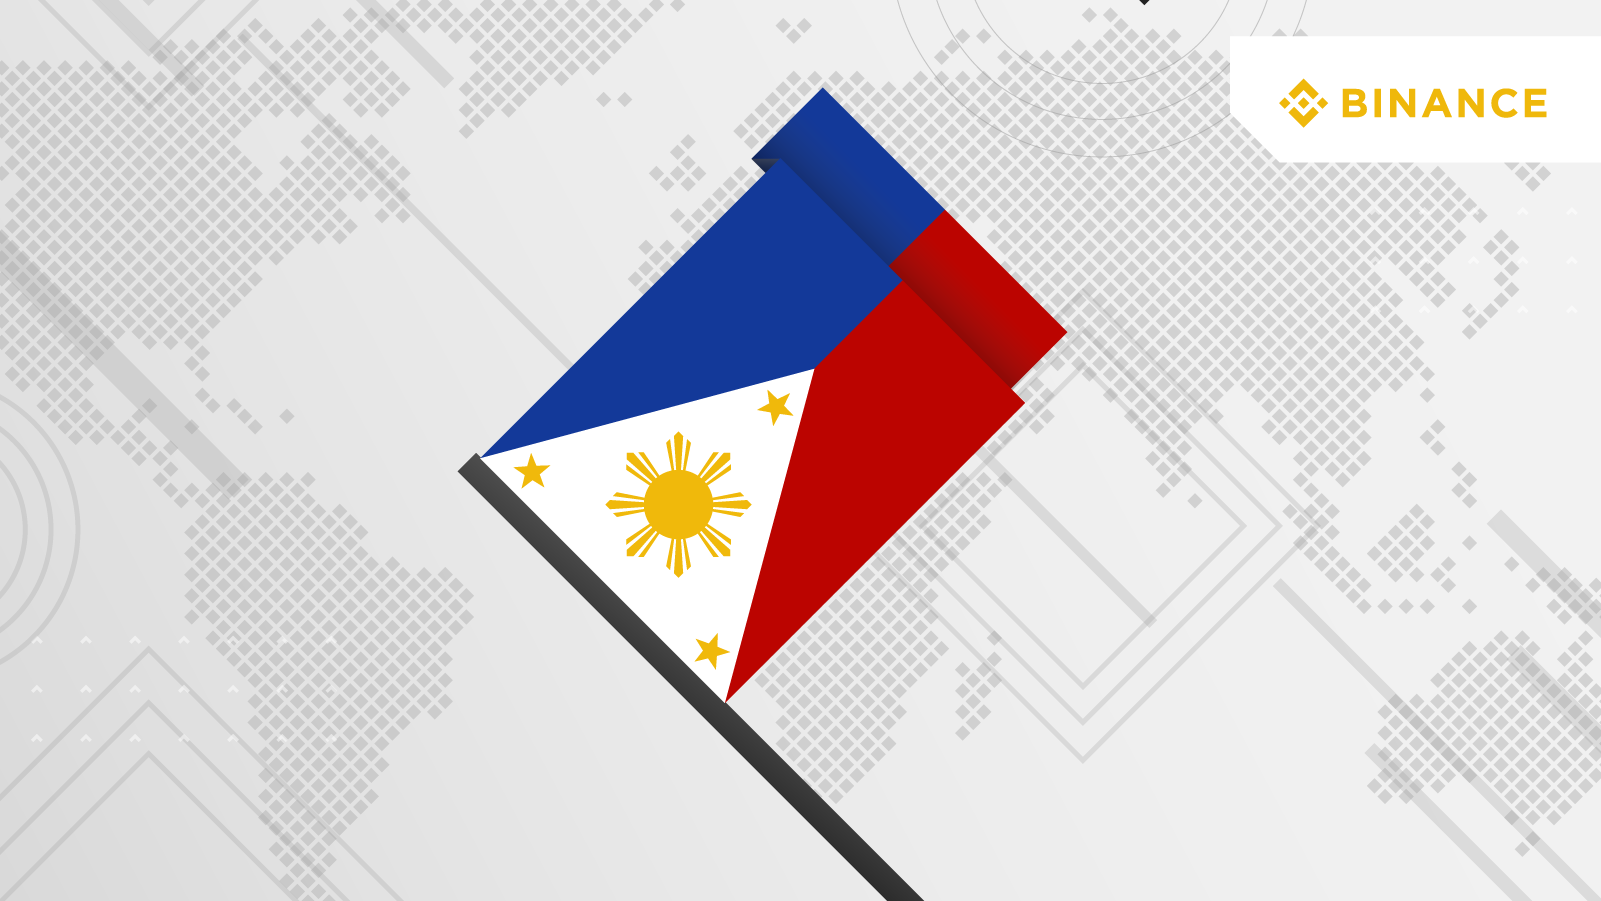 Philippines: An Internet-Savvy Hotbed for Crypto BUIDLing   Binance Blog